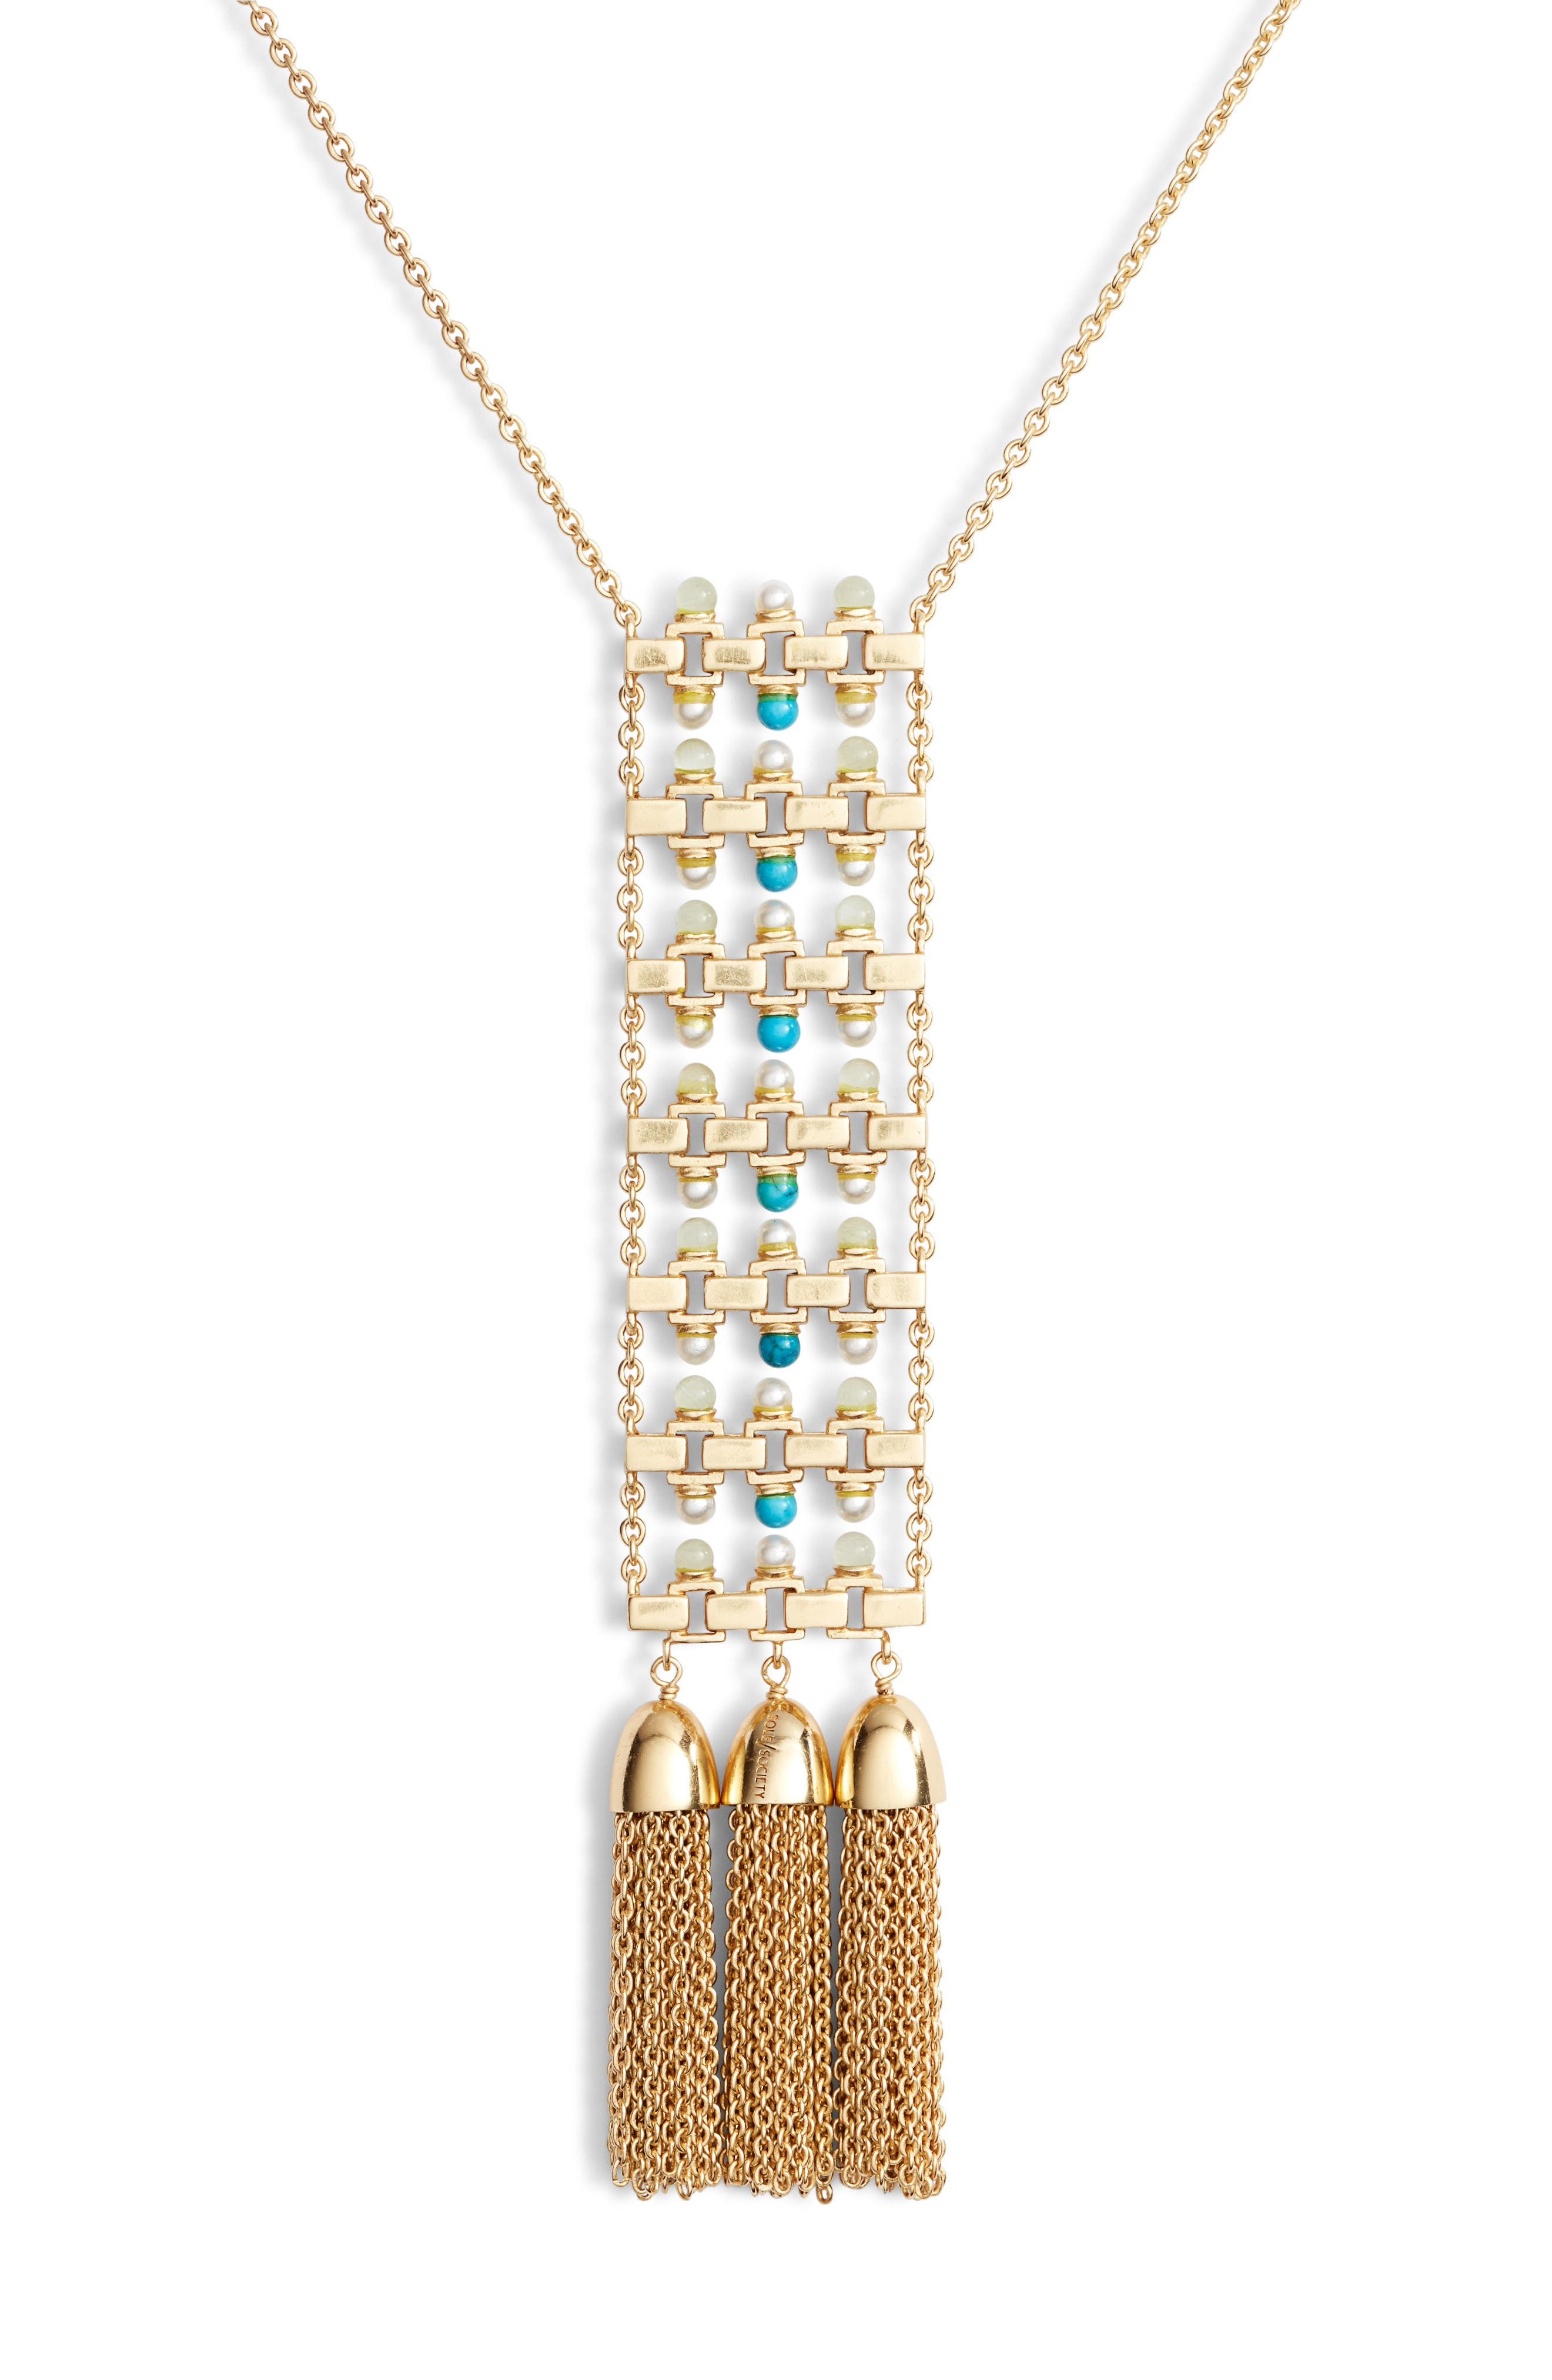 Ladder Pendant Necklace,                             Alternate thumbnail 2, color,                             GOLD/ IVORY PEARL